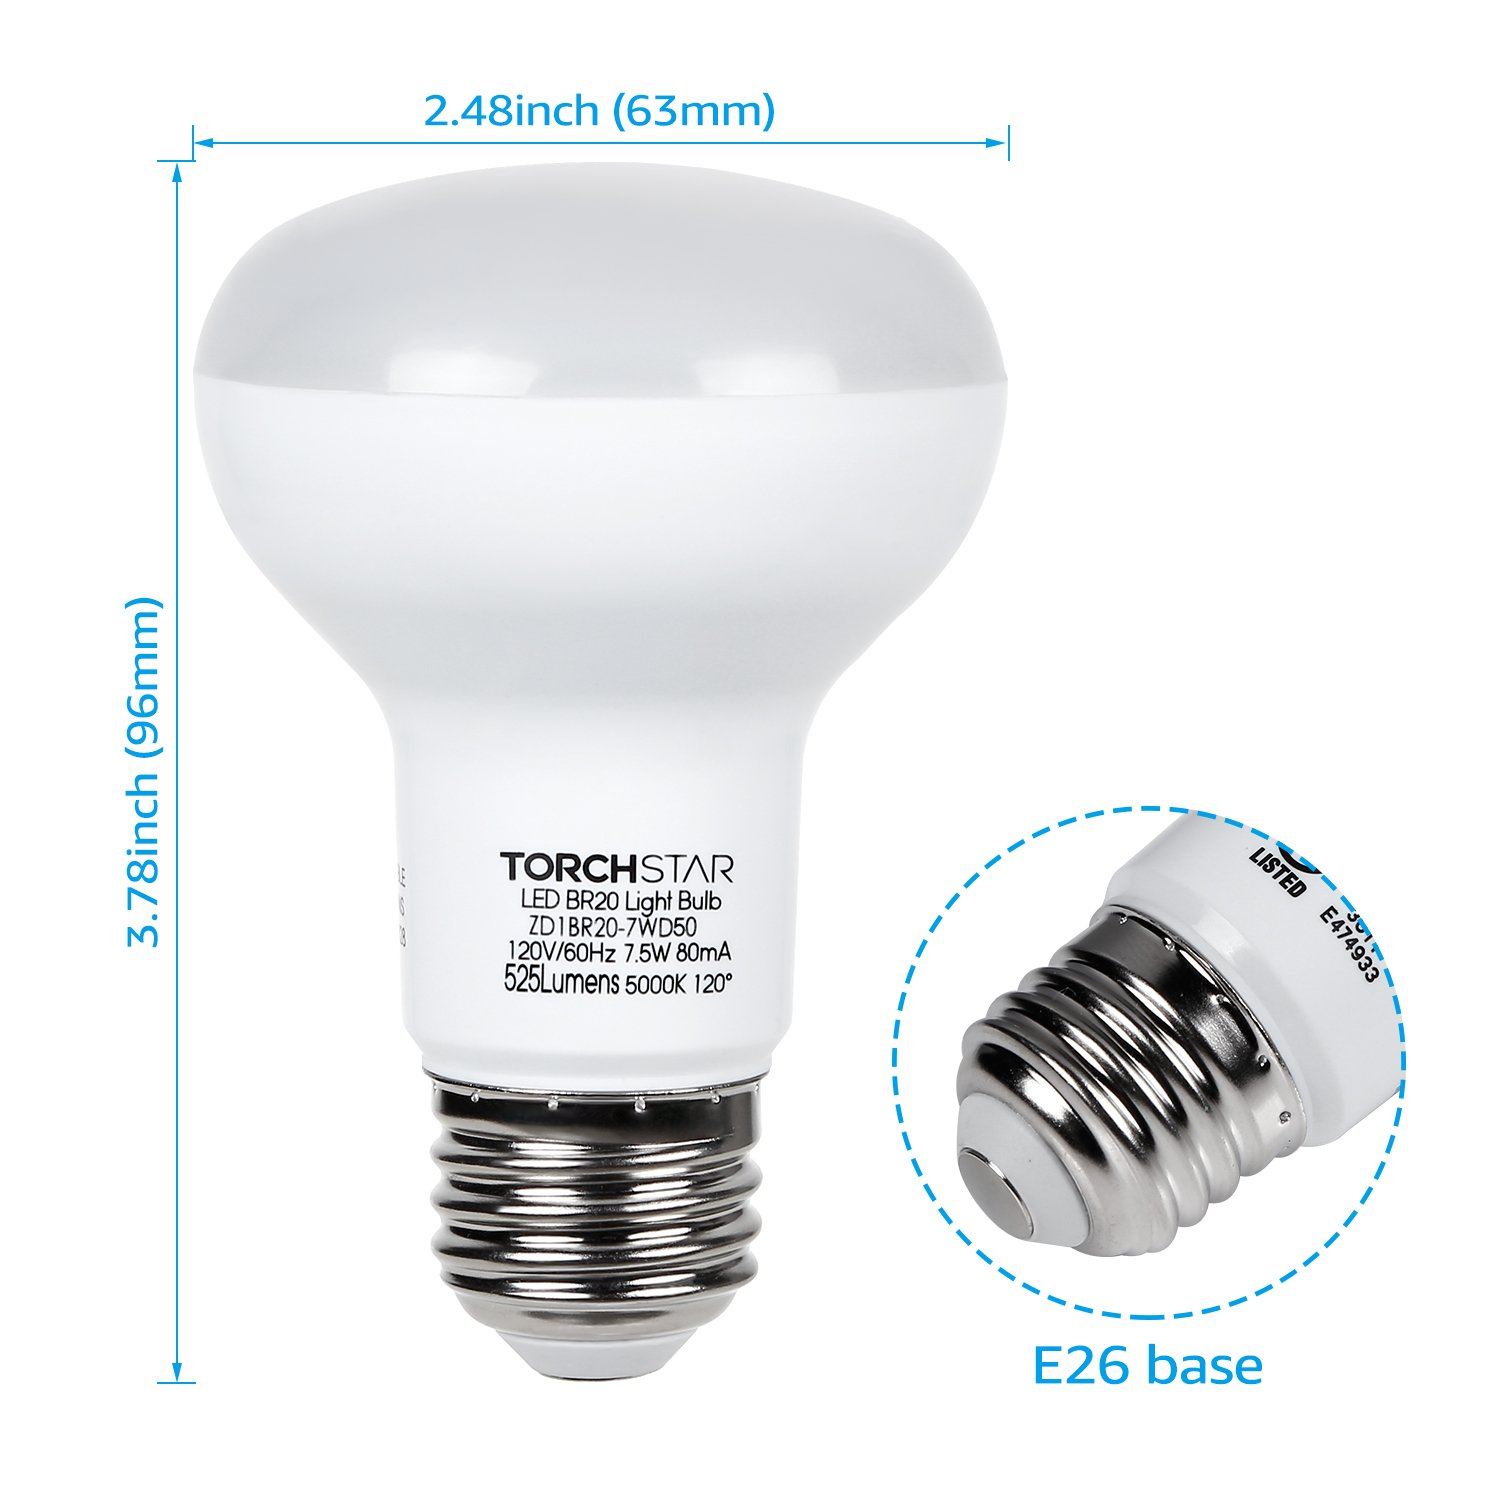 E26 Base Pack of 4 TORCHSTAR Dimmable BR20 LED Flood Light Bulb 3 Years Warranty UL /& Energy Star Listed 525 Lumens 5000K Daylight 7.5W 50W Incandescent Equivalent